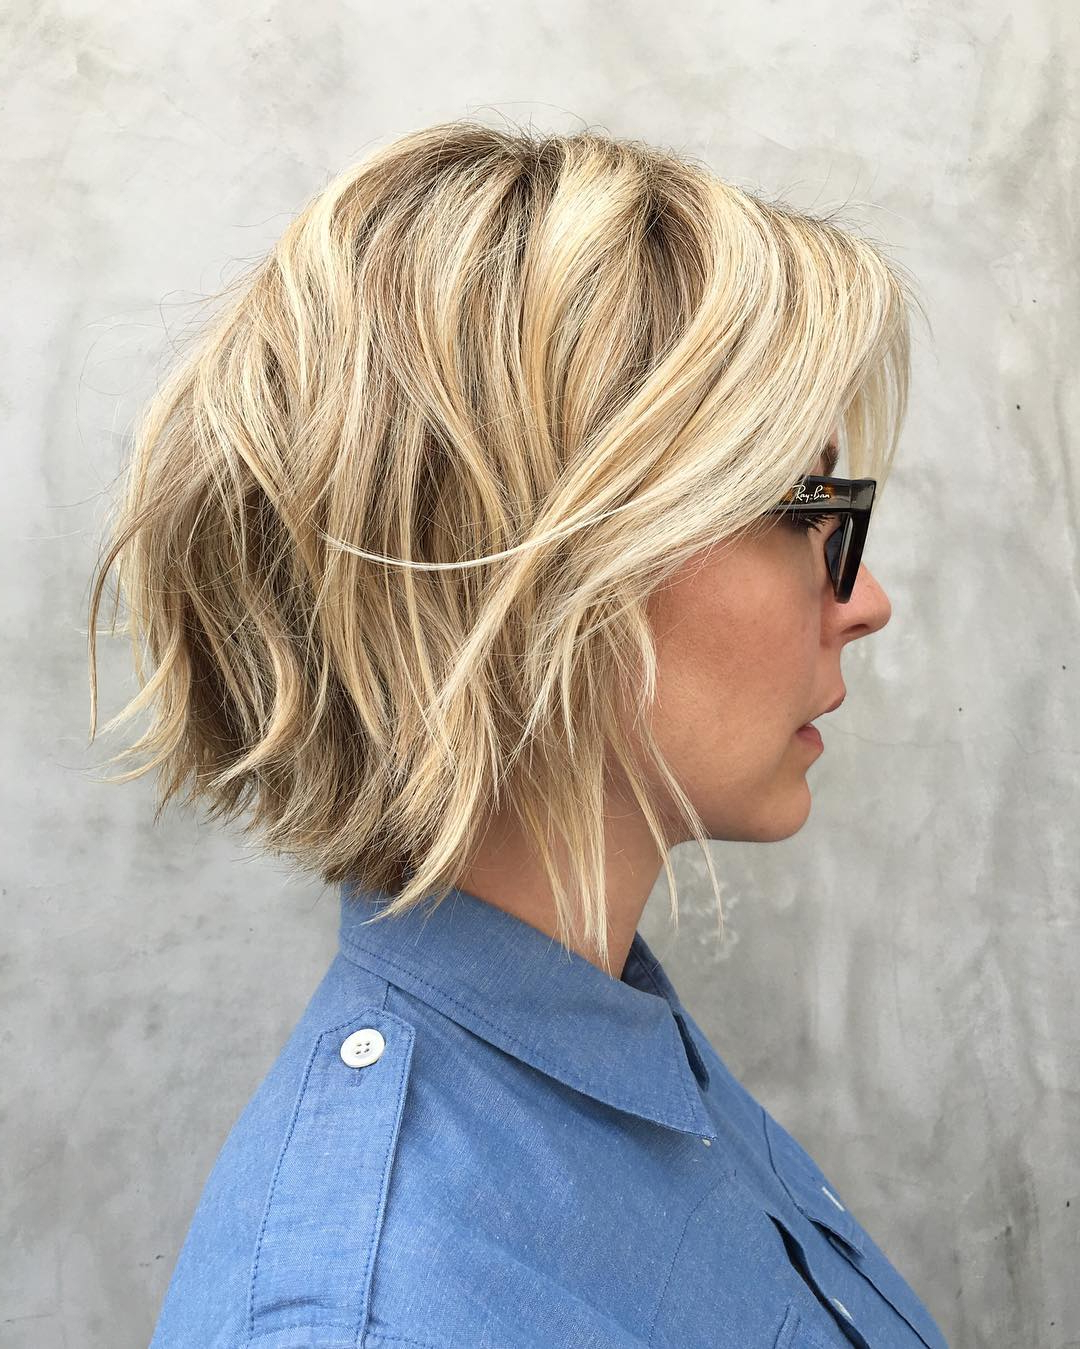 30 Trendiest Shaggy Bob Haircuts Of The Season For Messy Shaggy Inverted Bob Hairstyles With Subtle Highlights (View 6 of 20)